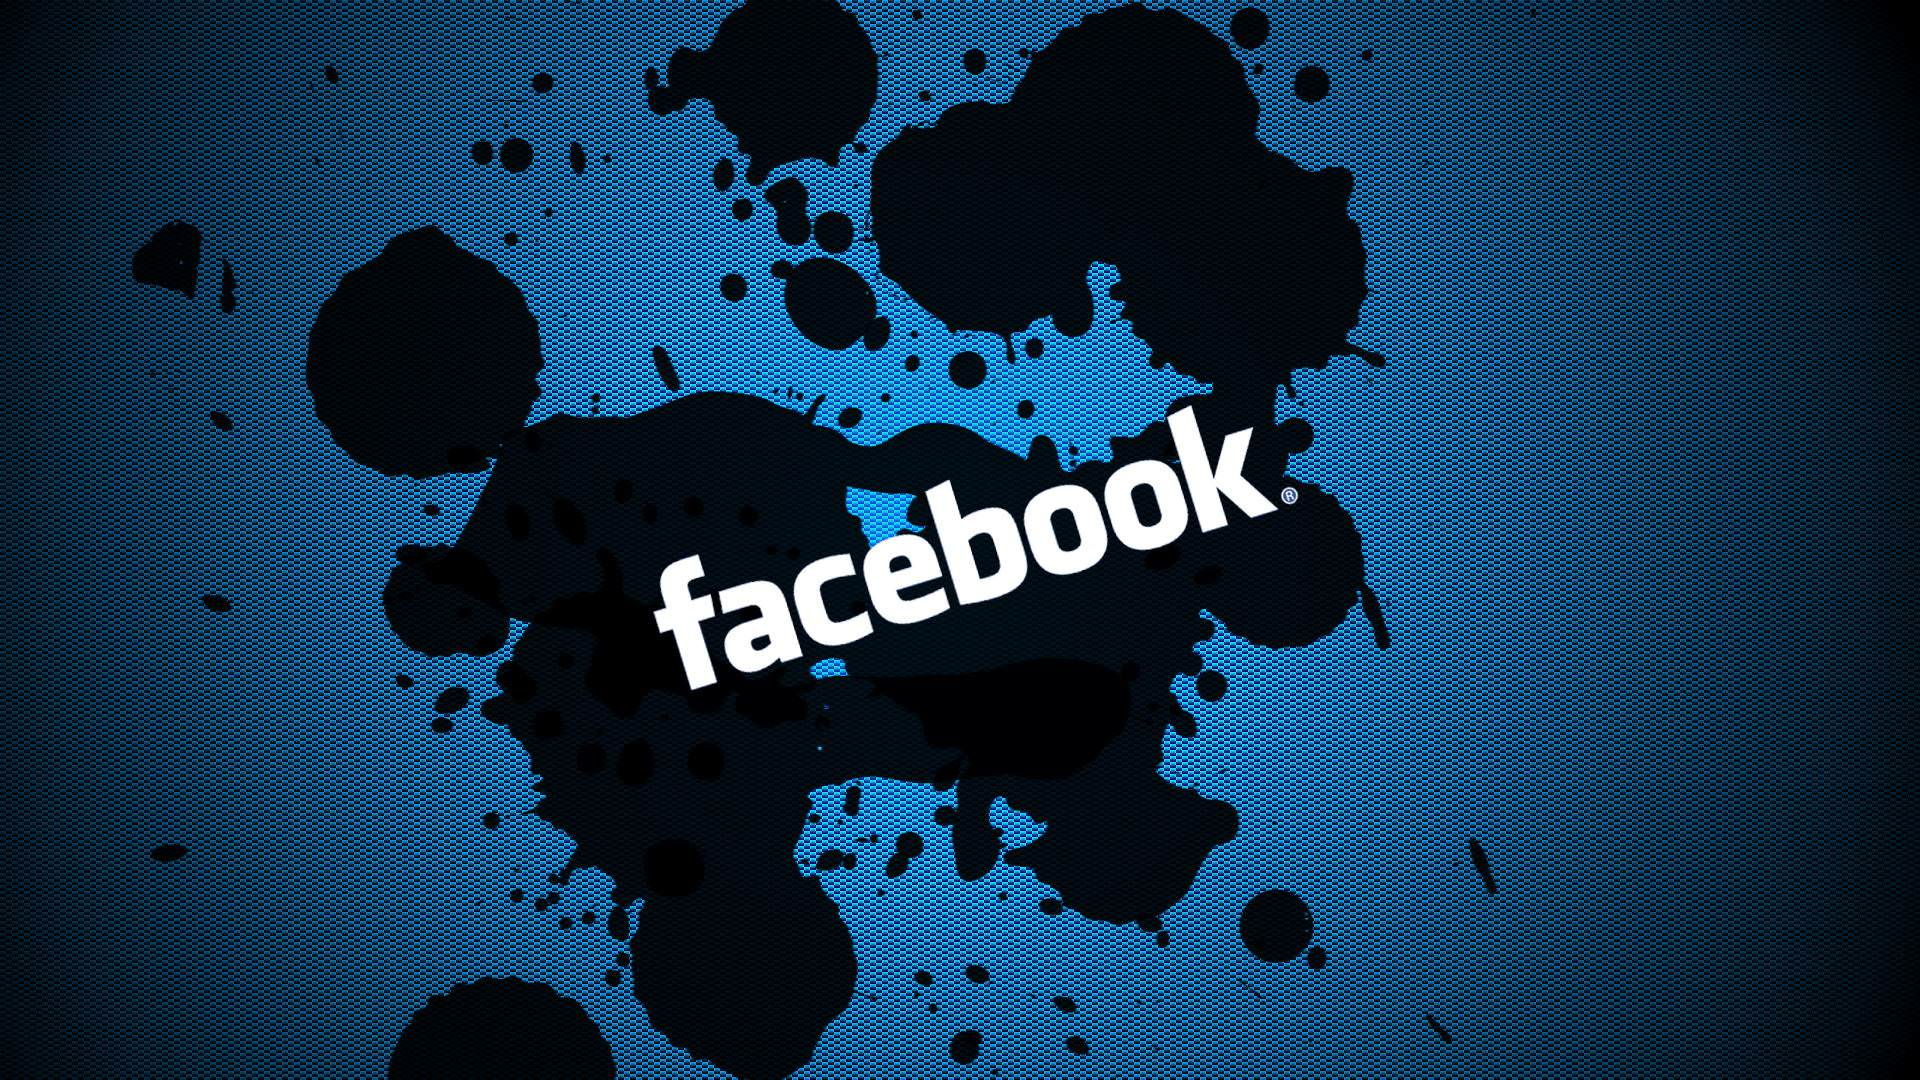 Latest Wallpapers For Facebook